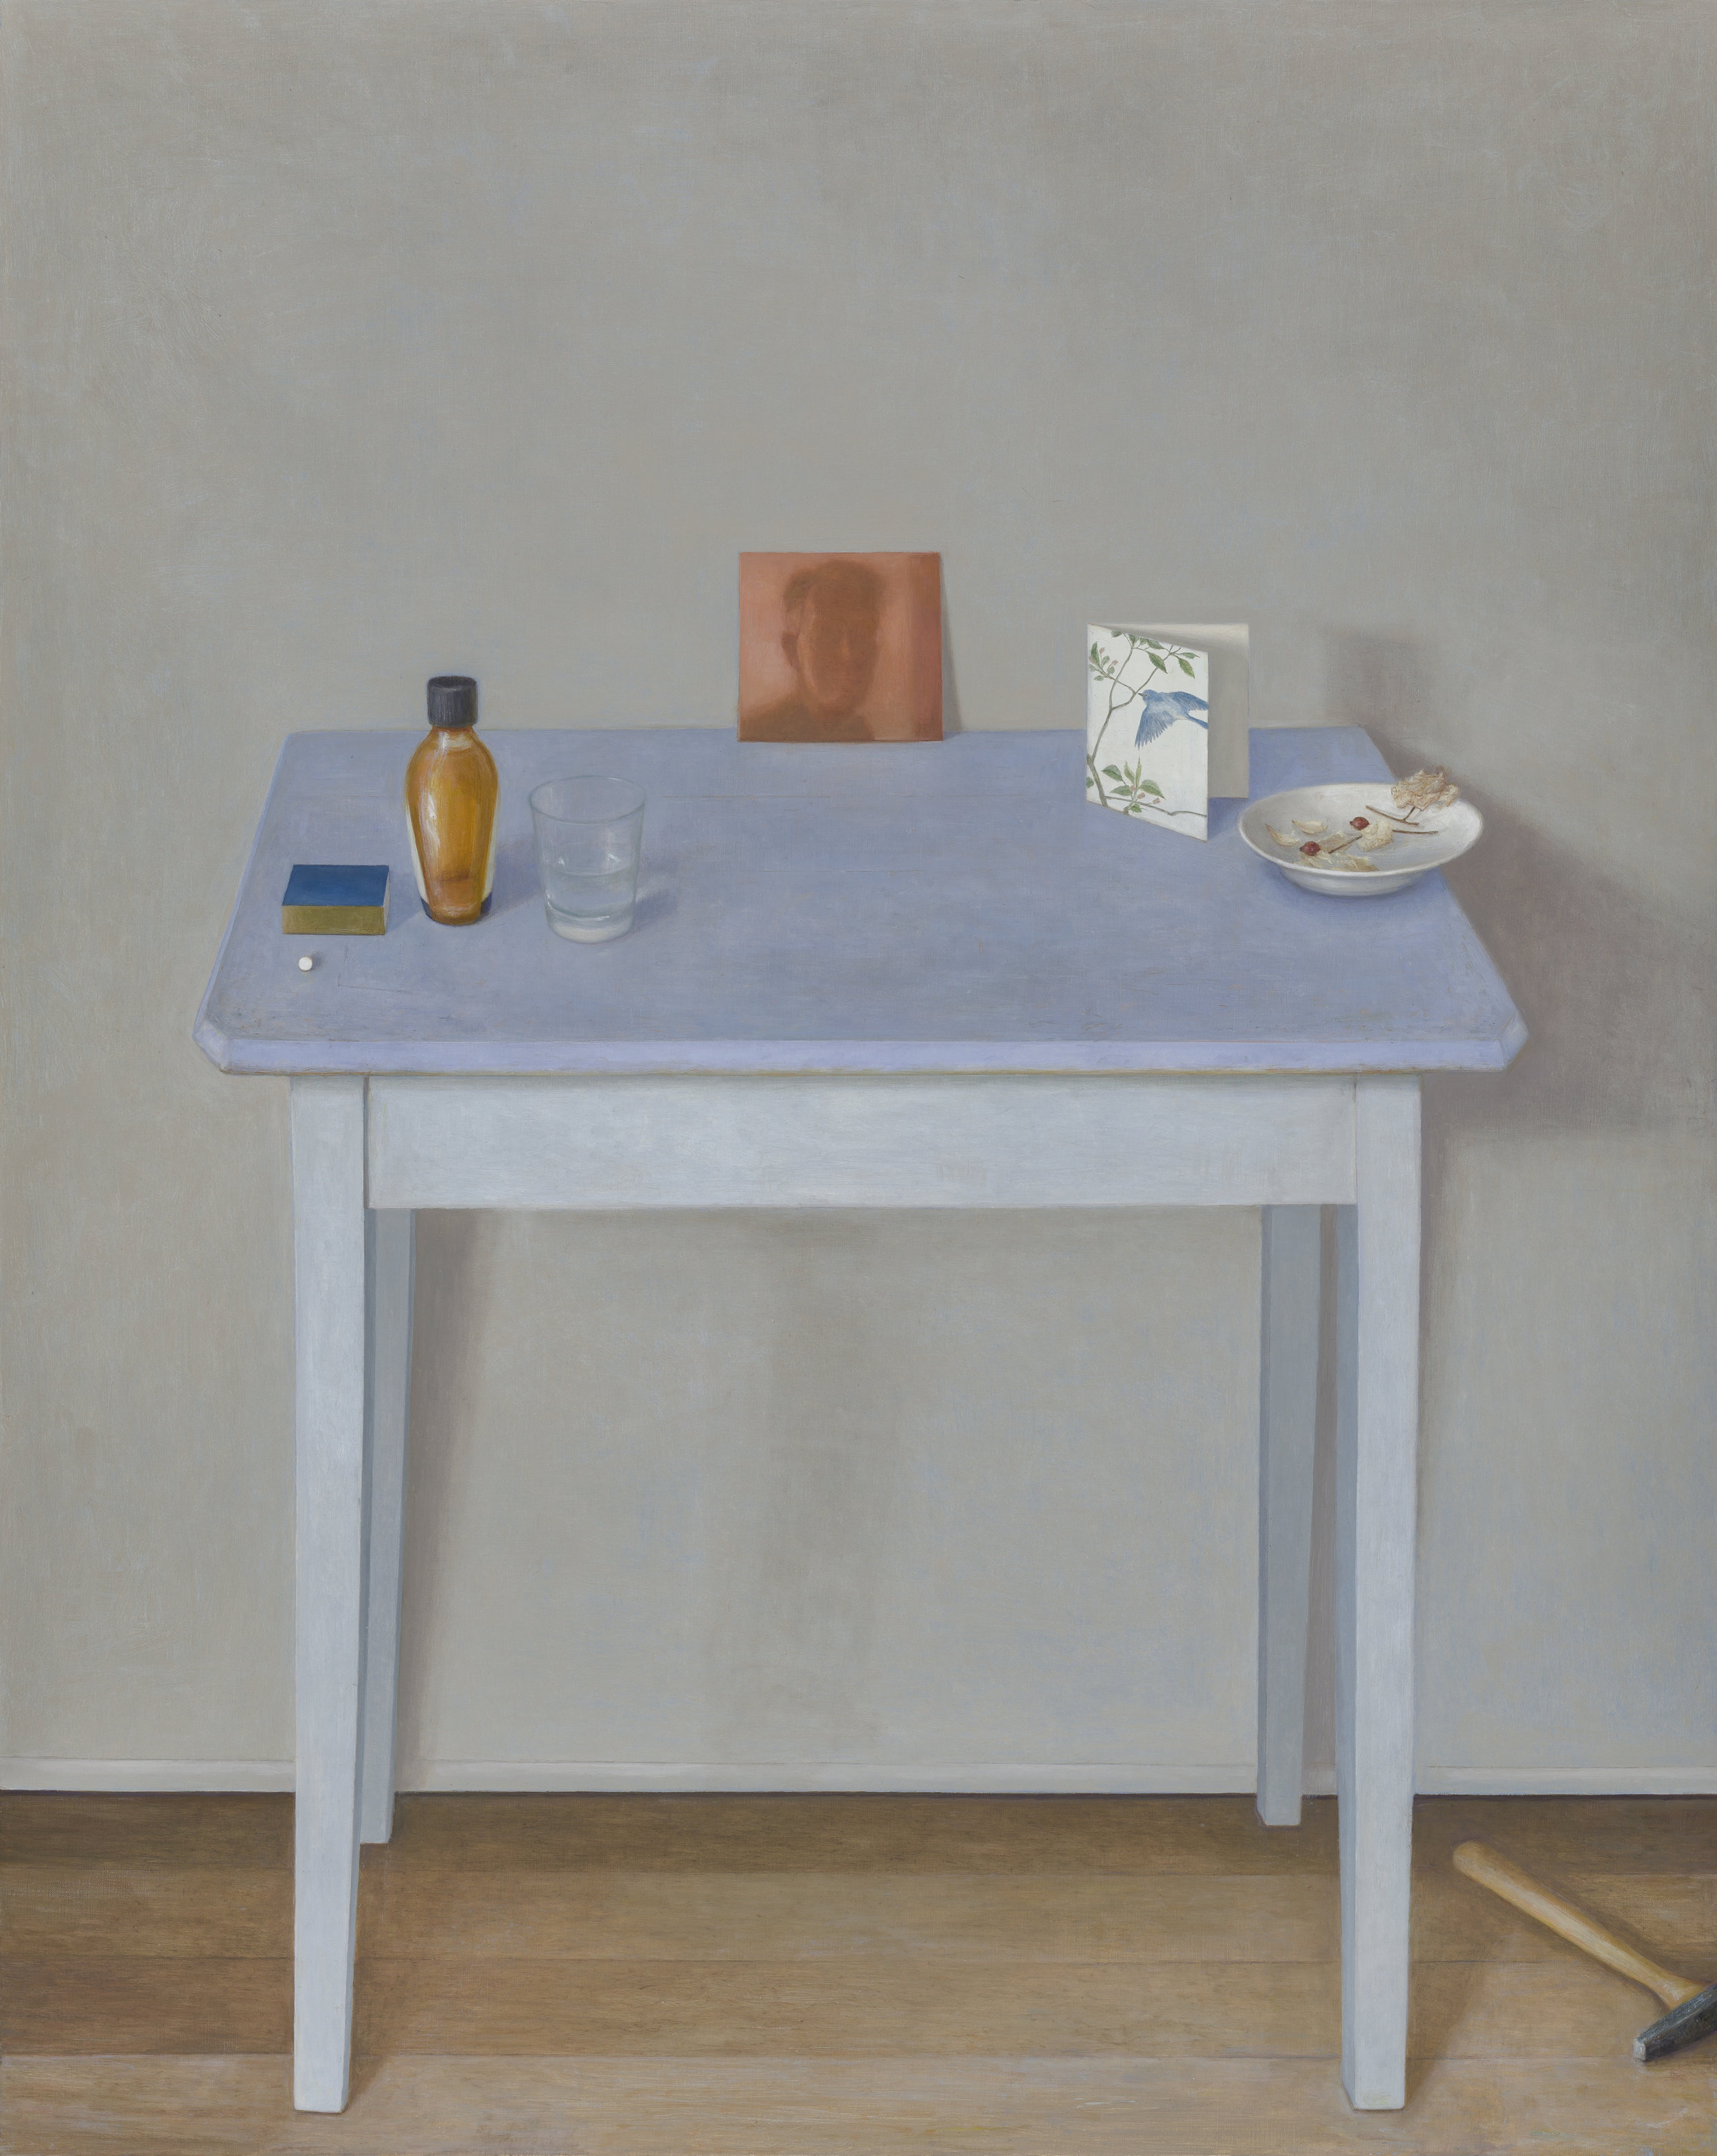 Table with Reflected Portrait  2017 Oil on linen 127x97cm $14,000